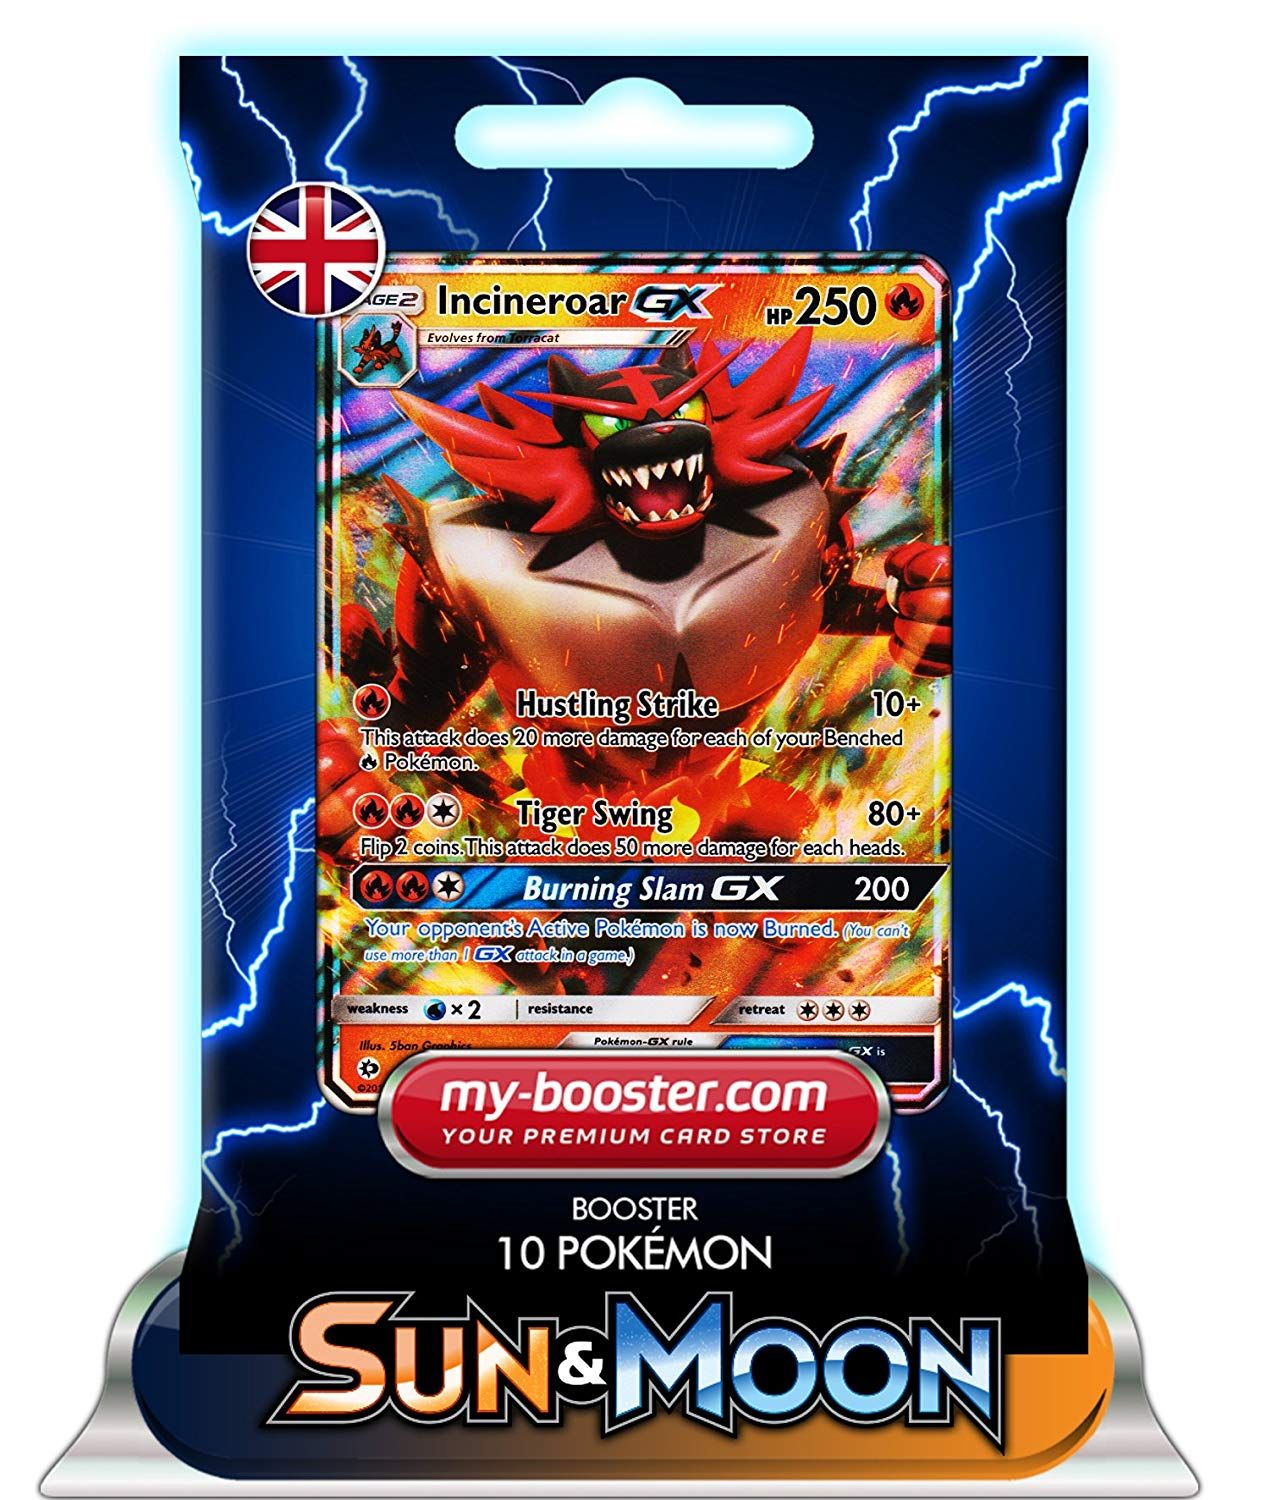 INCINEROAR GX 27/149 250HP SUN AND MOON 1 - Booster 10 English Pokemon  trading cards my-booster: Amazon.co.uk: Toys & Games